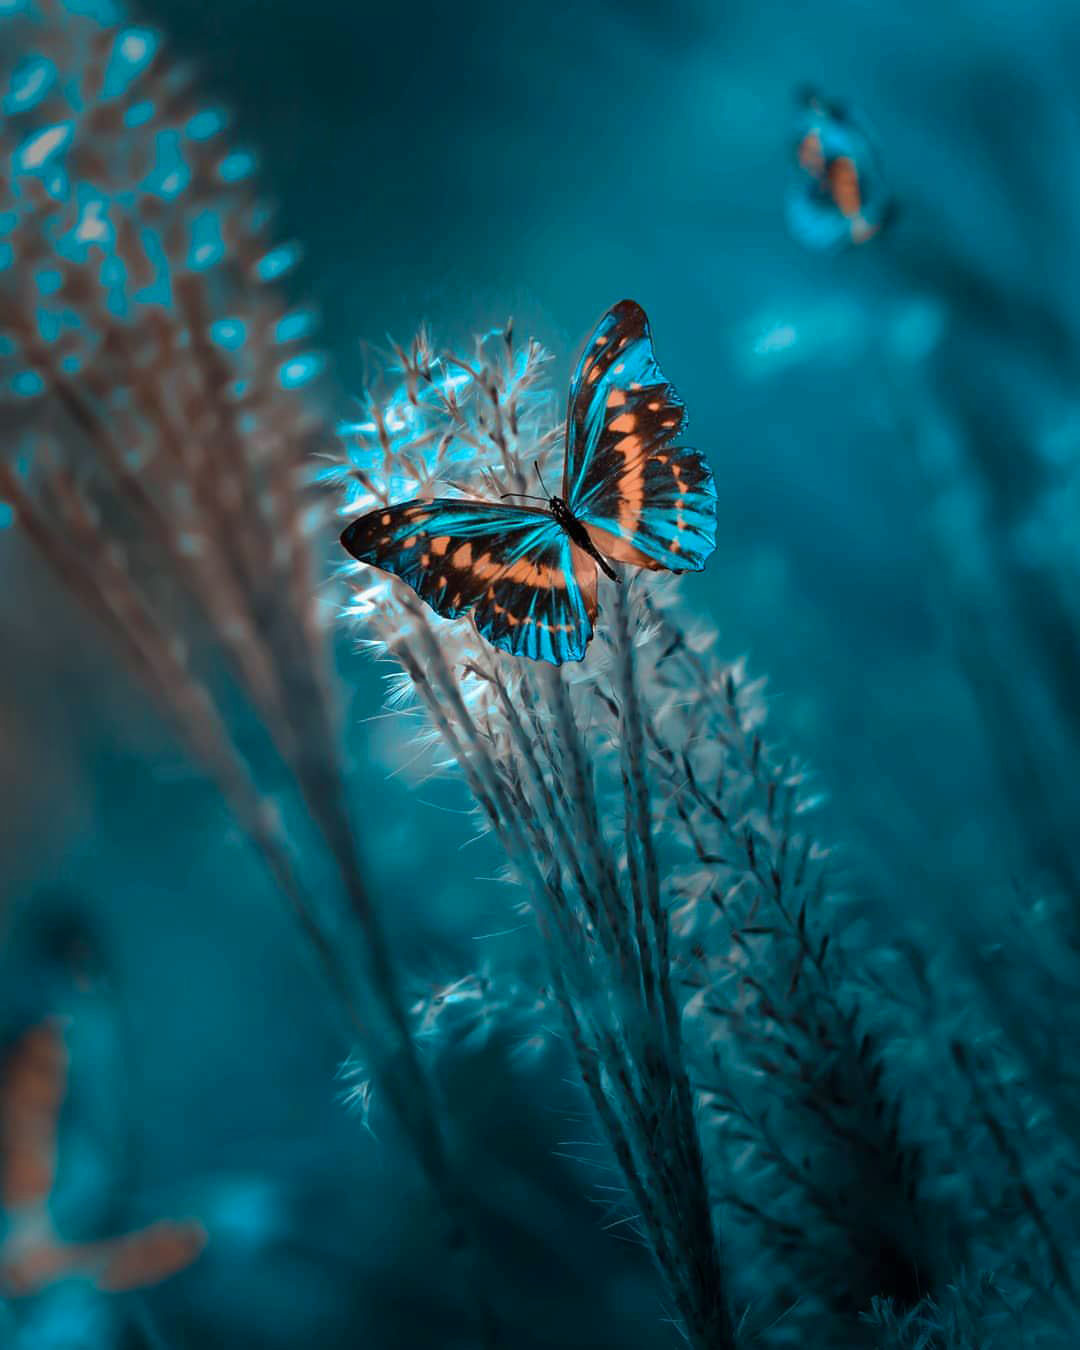 butterfly 4k Uniqe Whatsapp Dp Images hd download